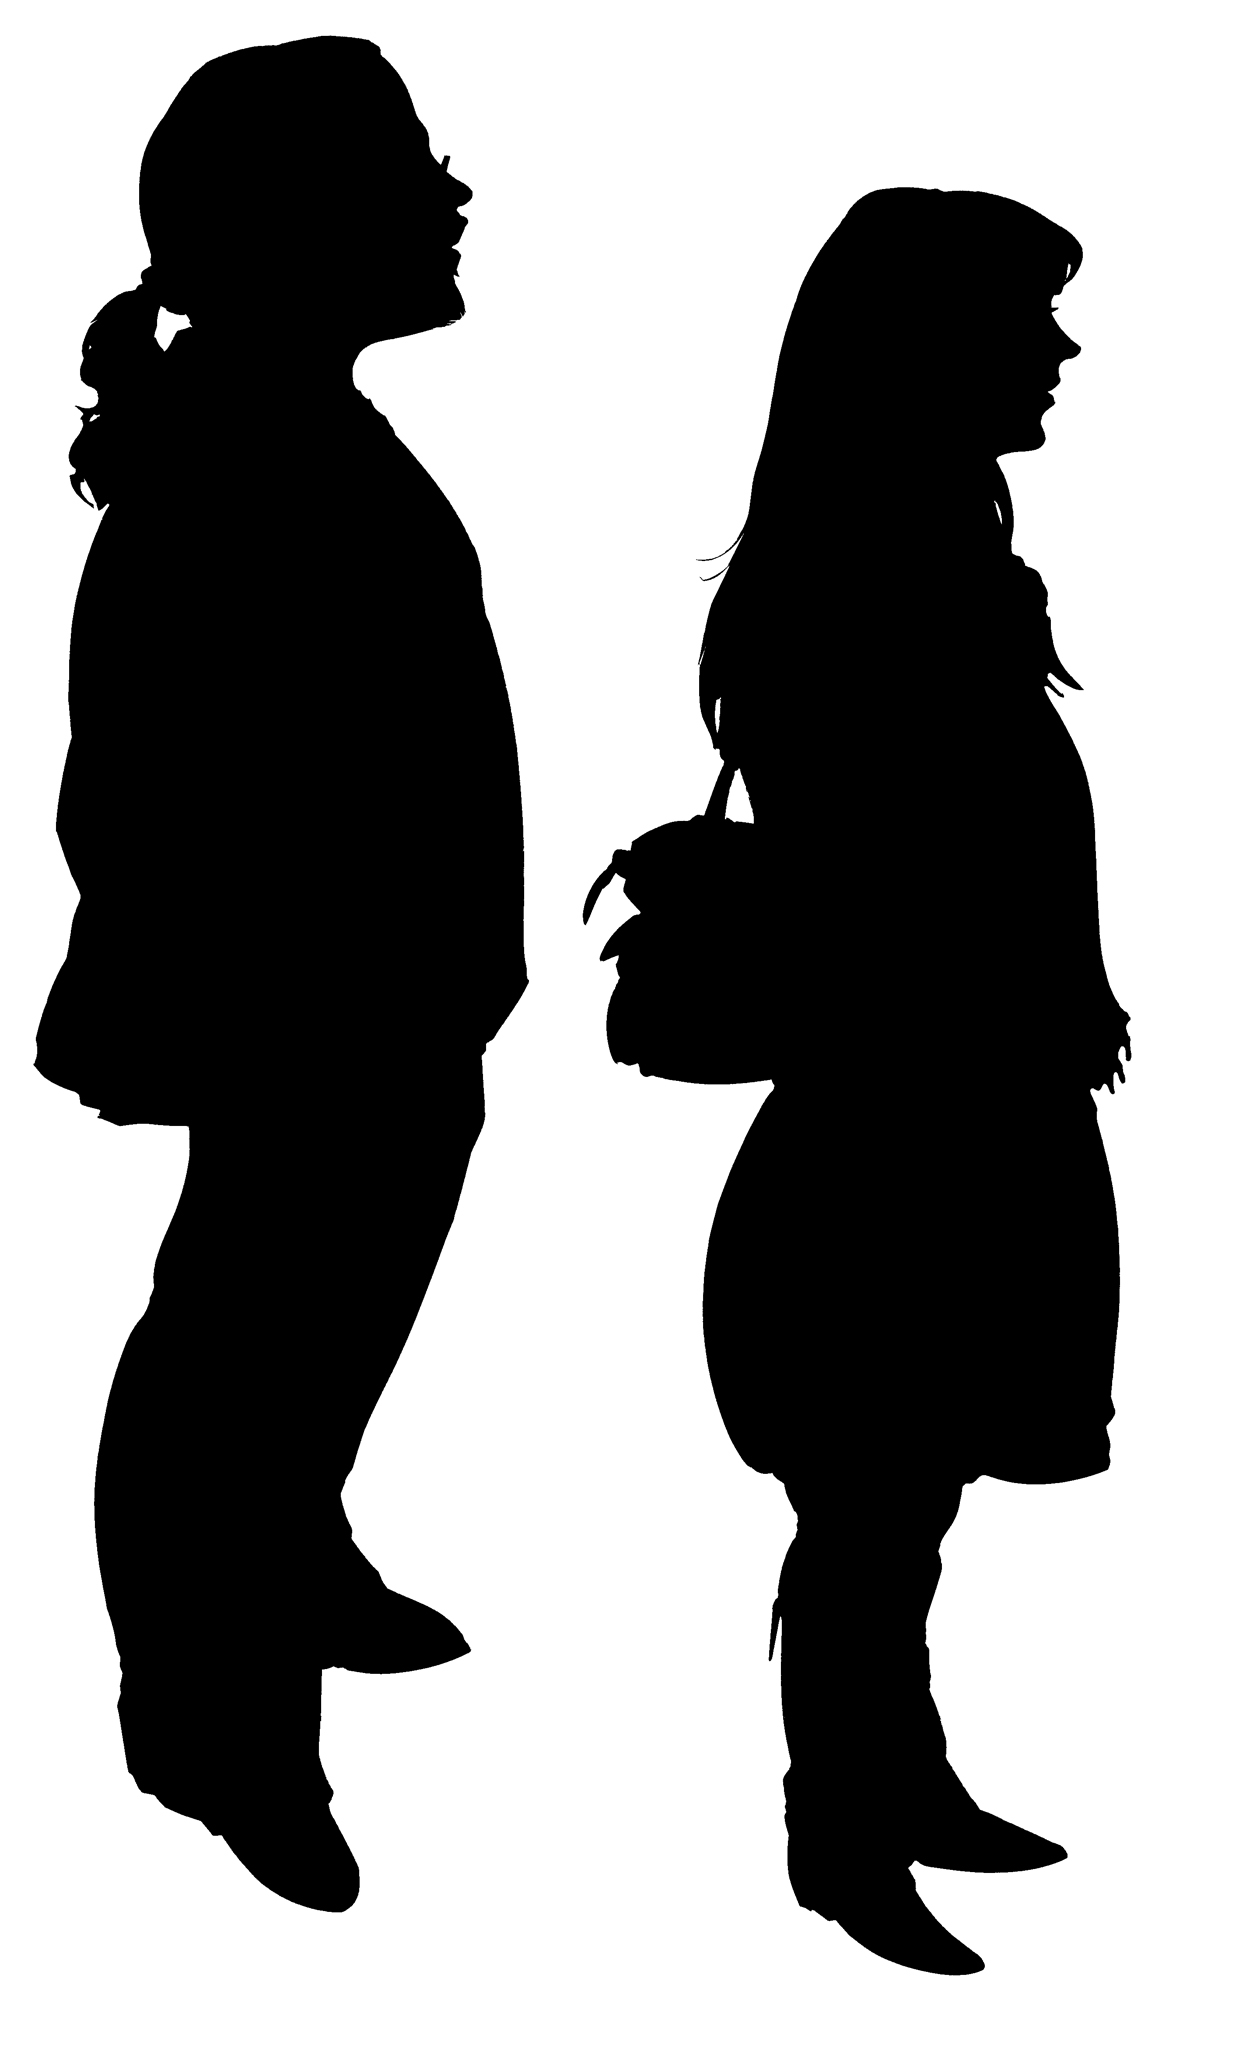 classic cameos silhouettes and